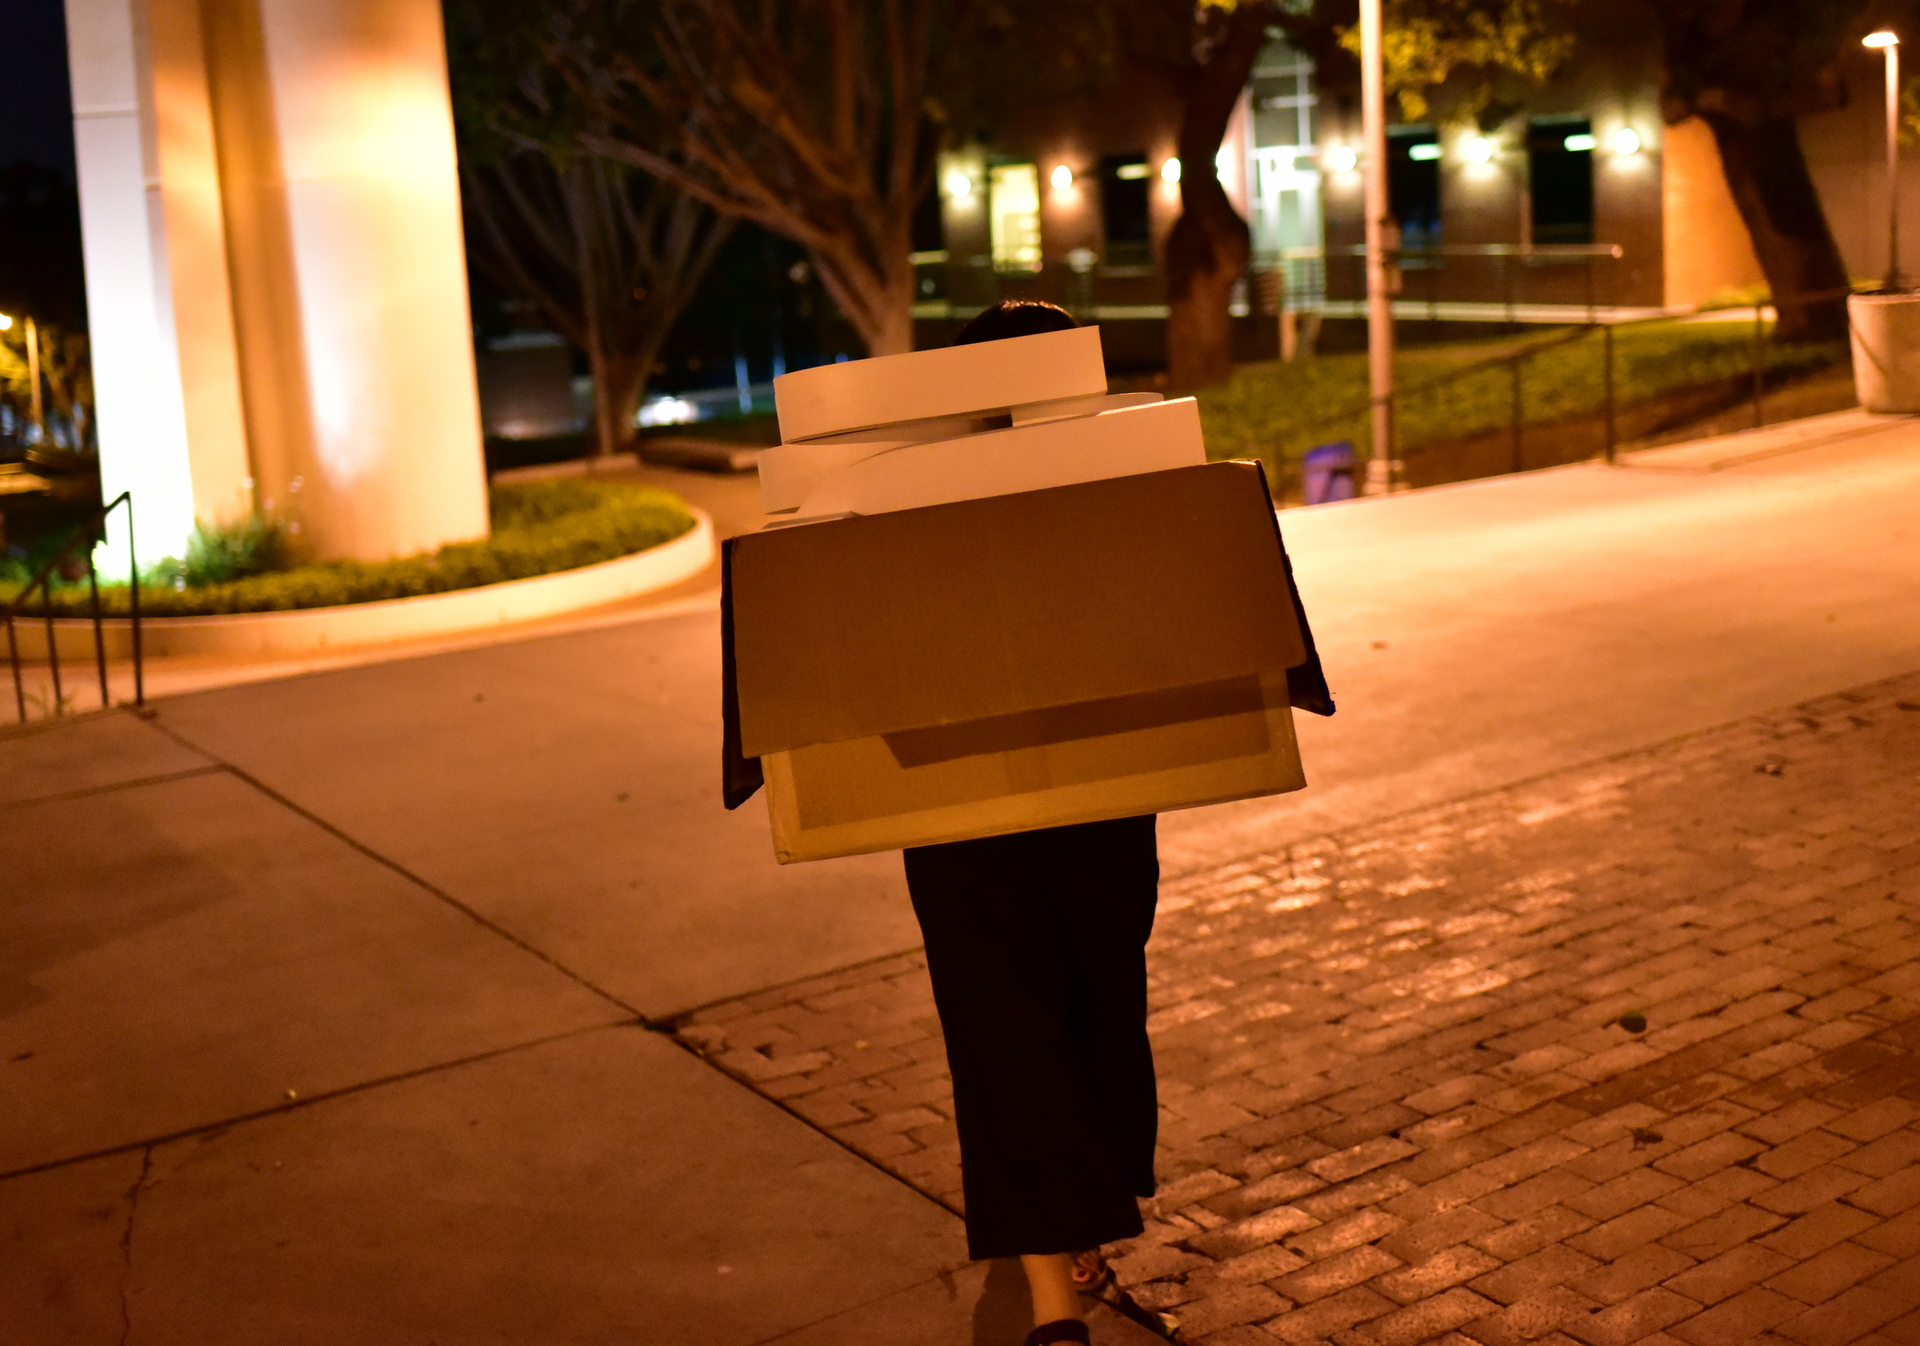 "TEDxCSULB curator Camille Raquel carries a box with the ""T-E-D-x-C-S-U-L-B"" letters across the CSULB campus at night. You can't actually see her face in this photo, the large box of letters covers it - you only see a box and legs"